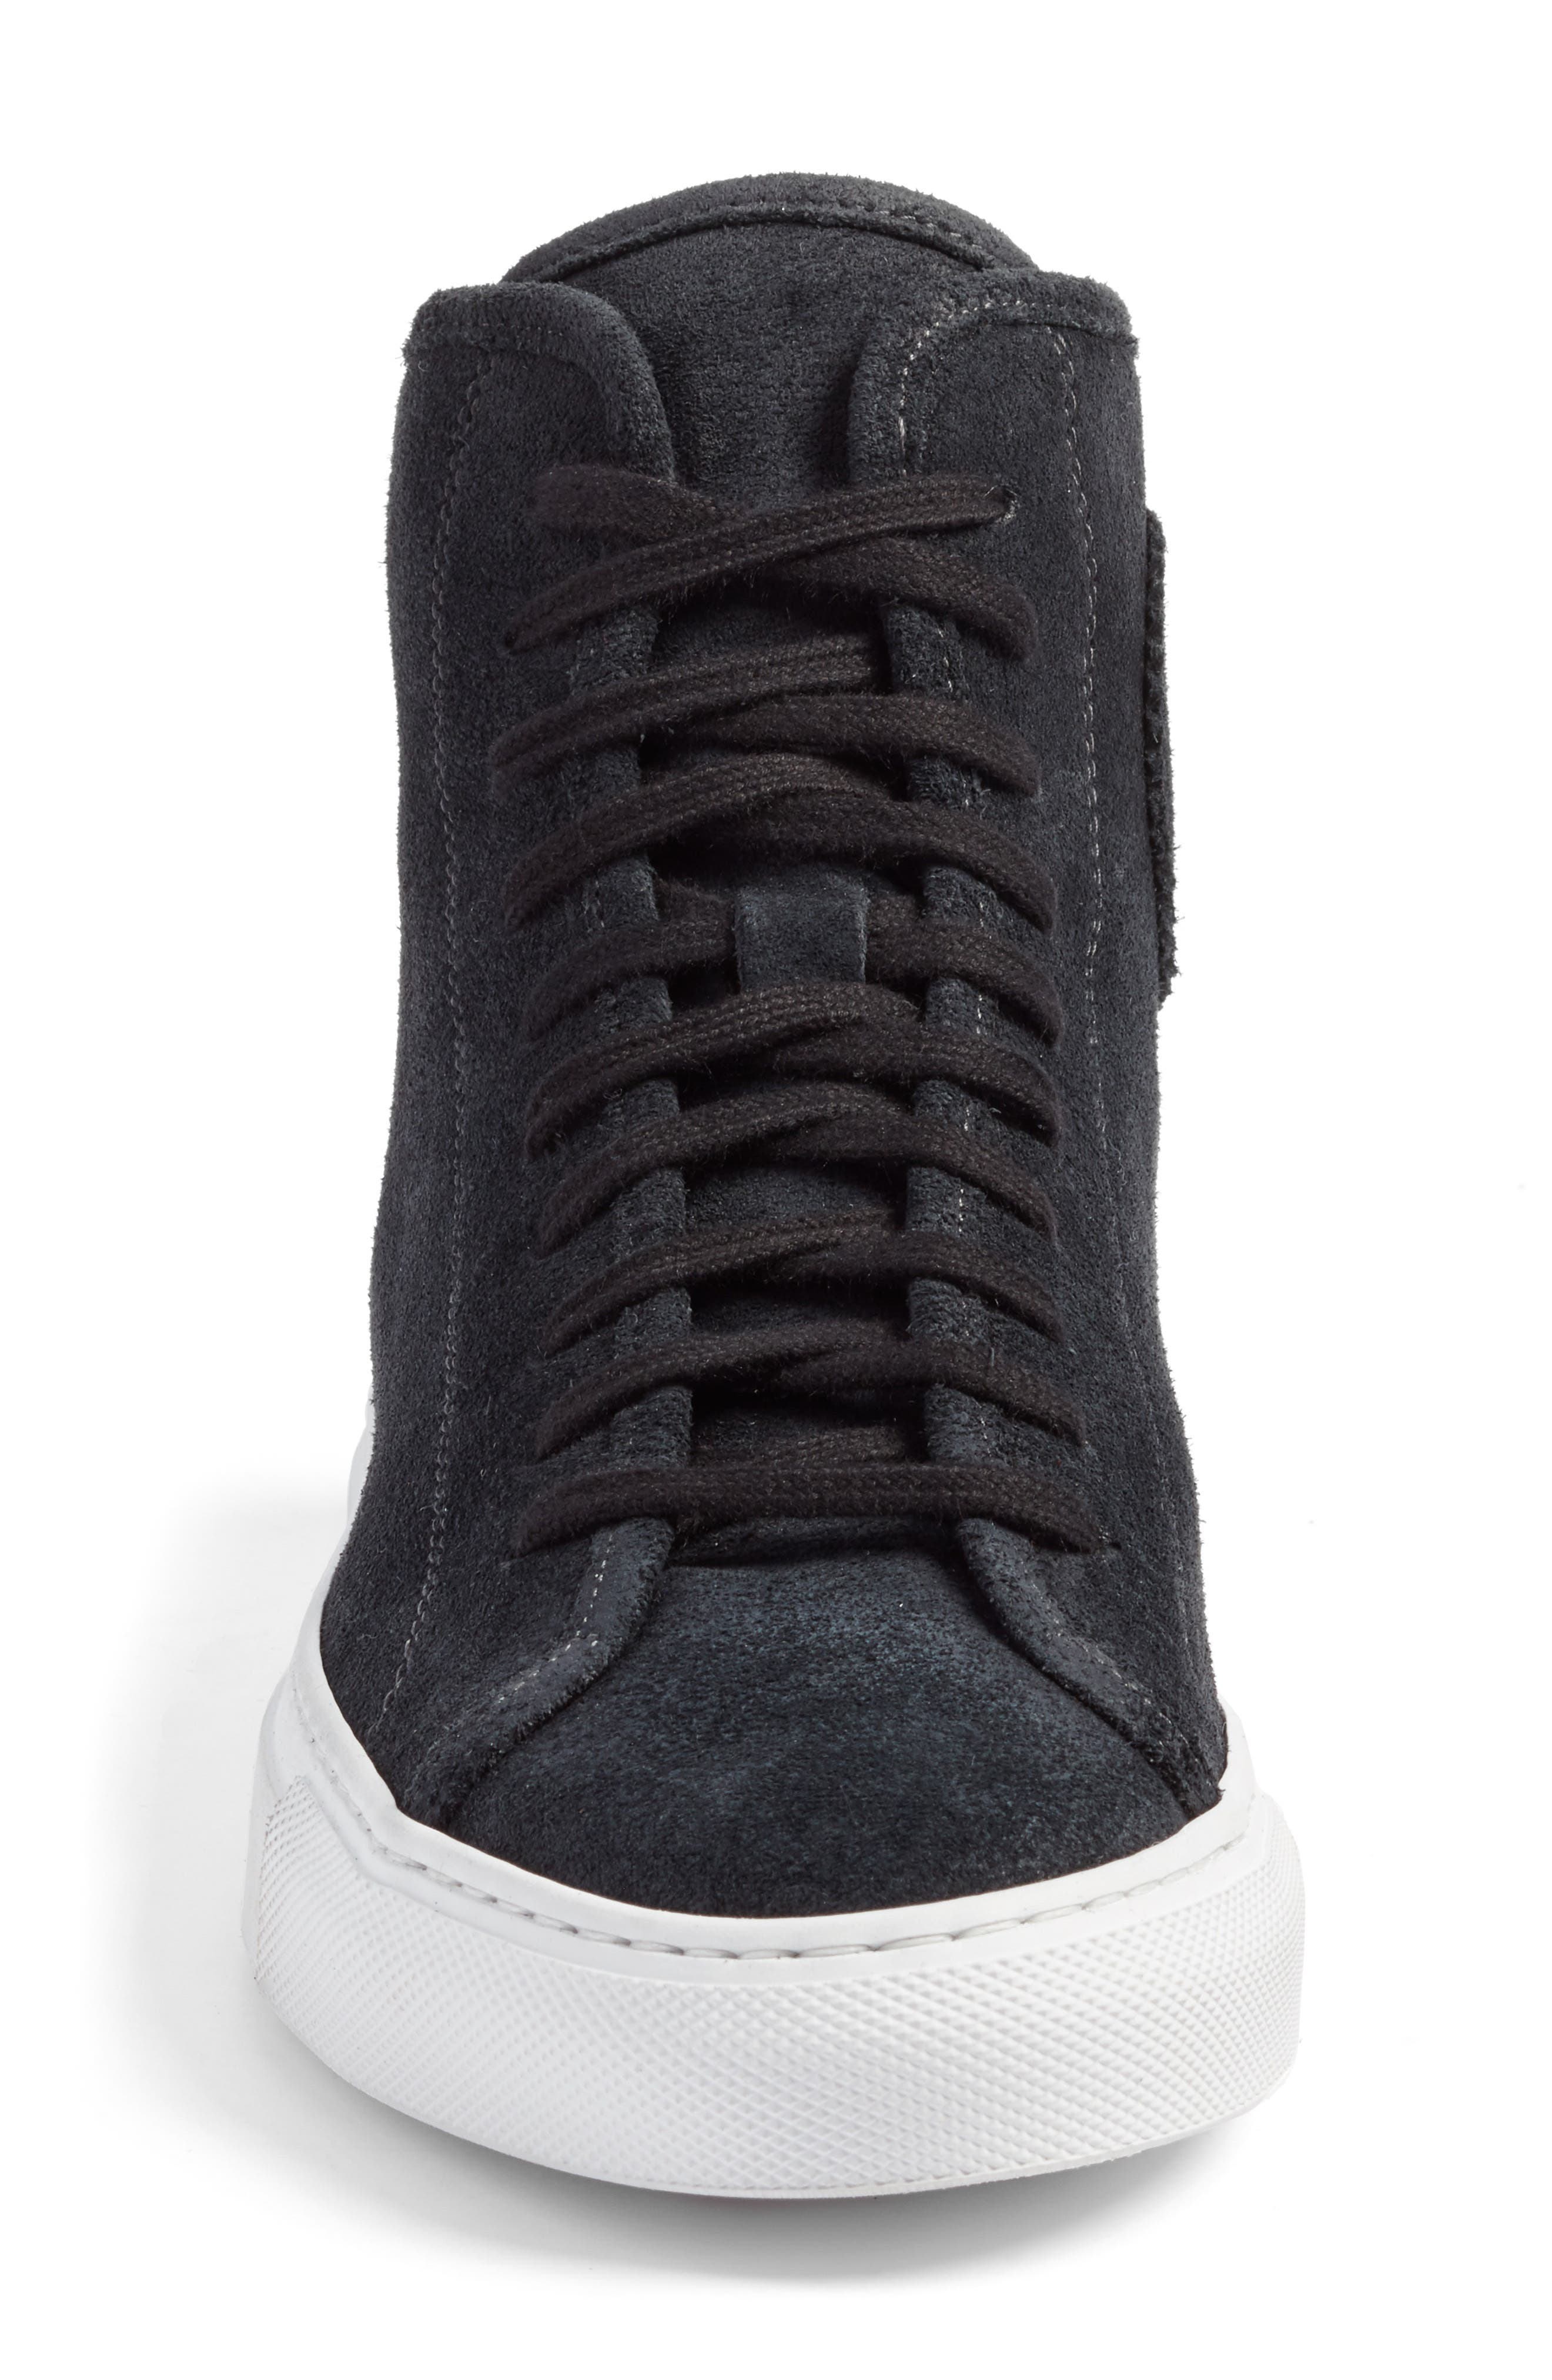 Alternate Image 4  - Common Projects Tournament High Top Sneakers (Women)